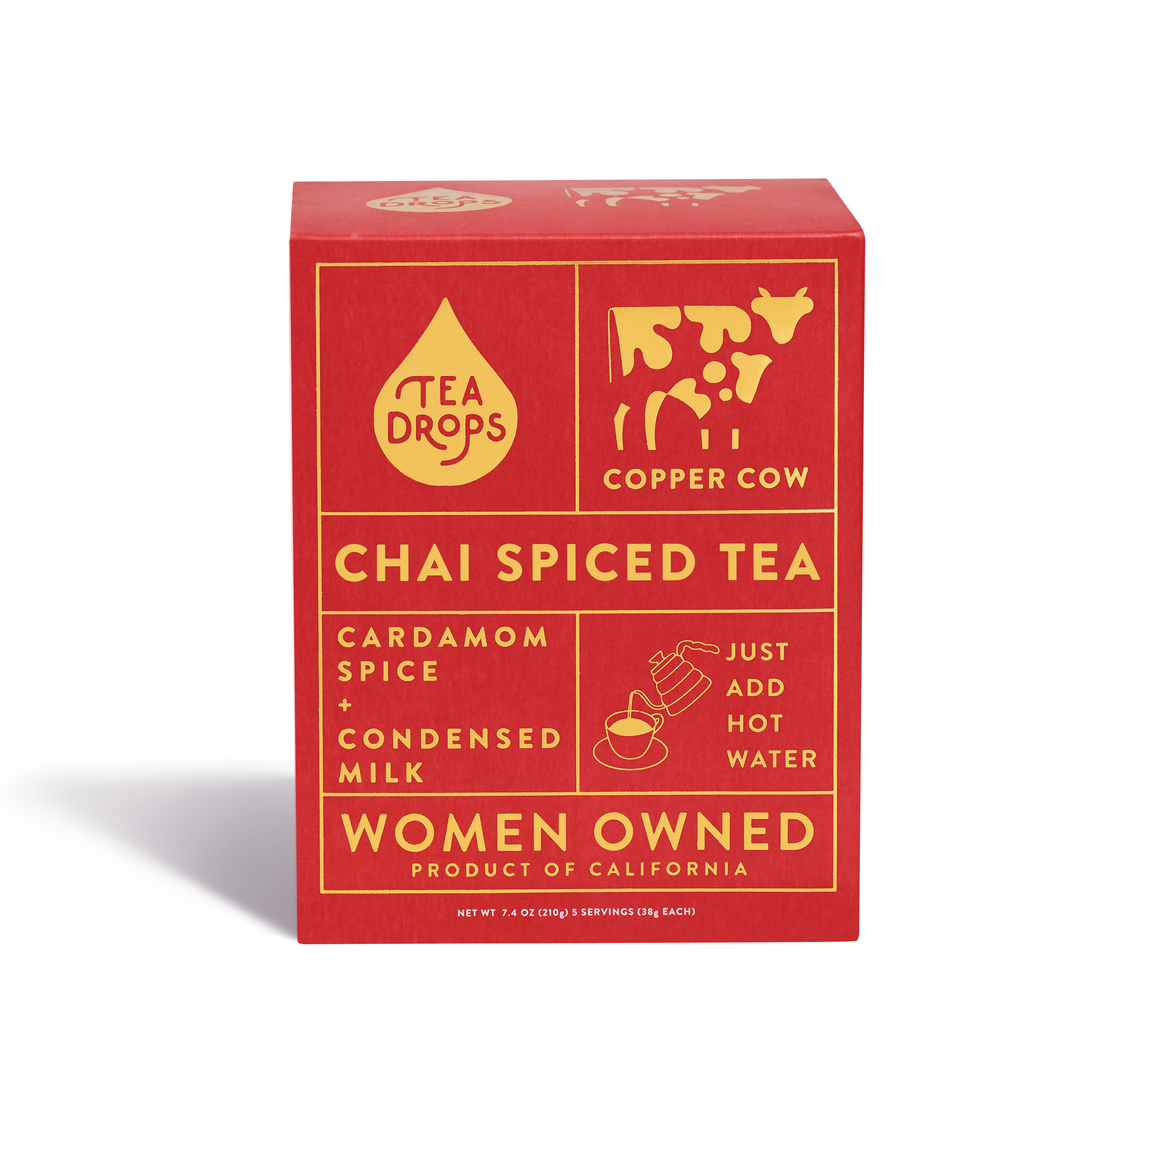 Tea Drops Chai Iced Tea Kit